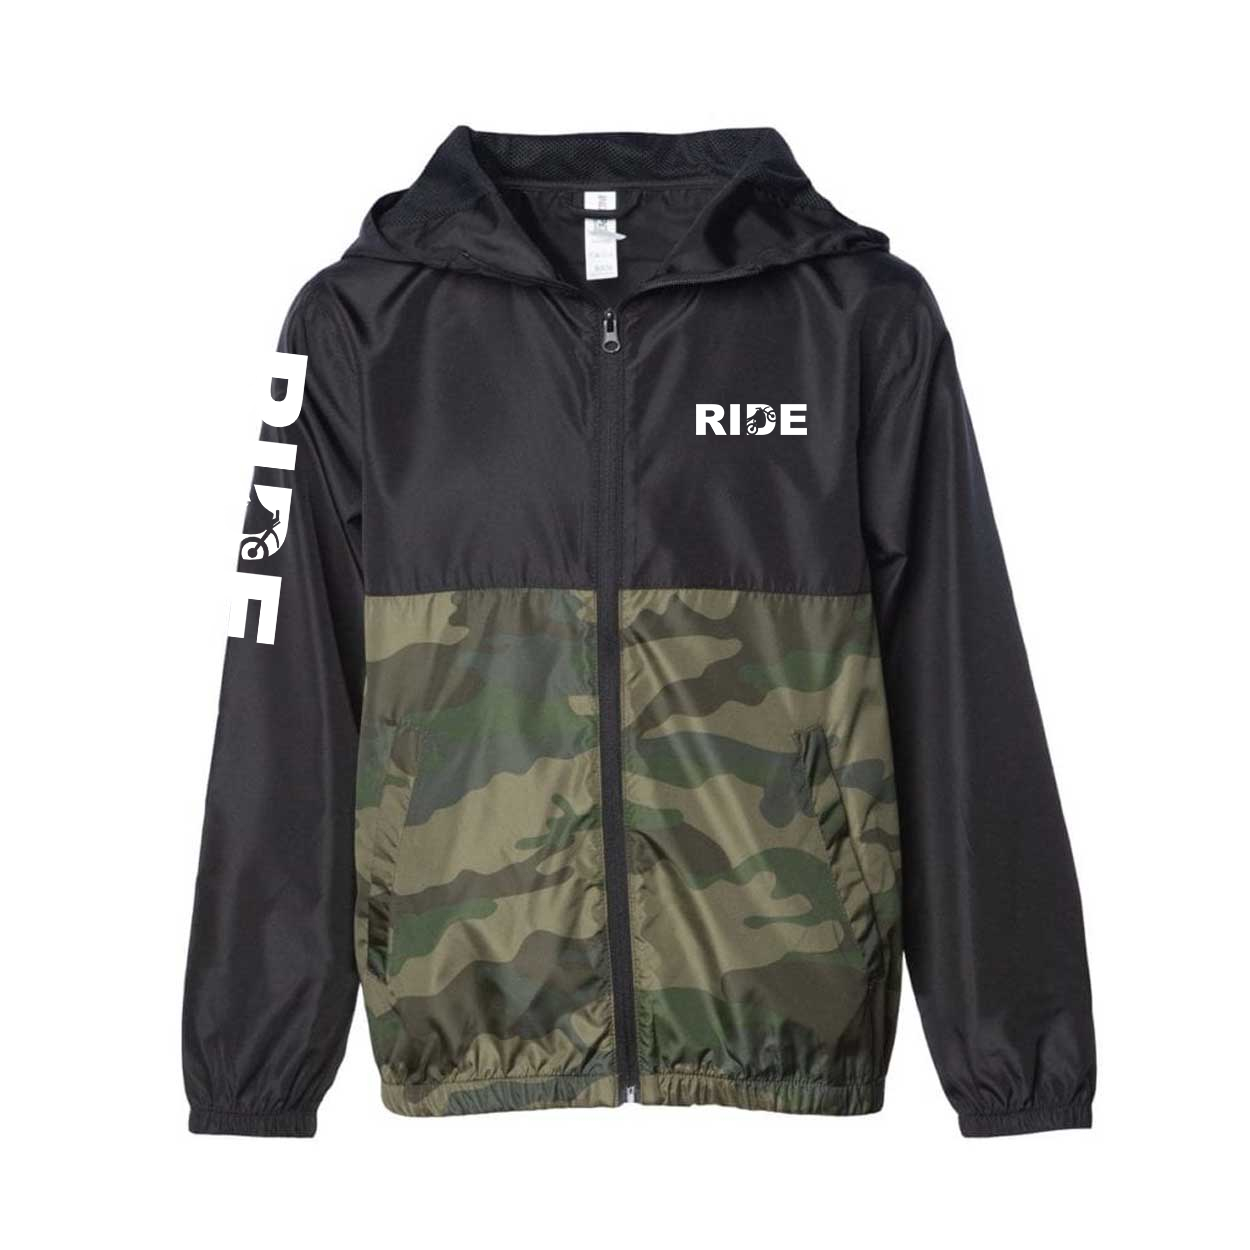 Ride Moto Logo Classic Youth Lightweight Windbreaker Black/Forest Camo (White Logo)